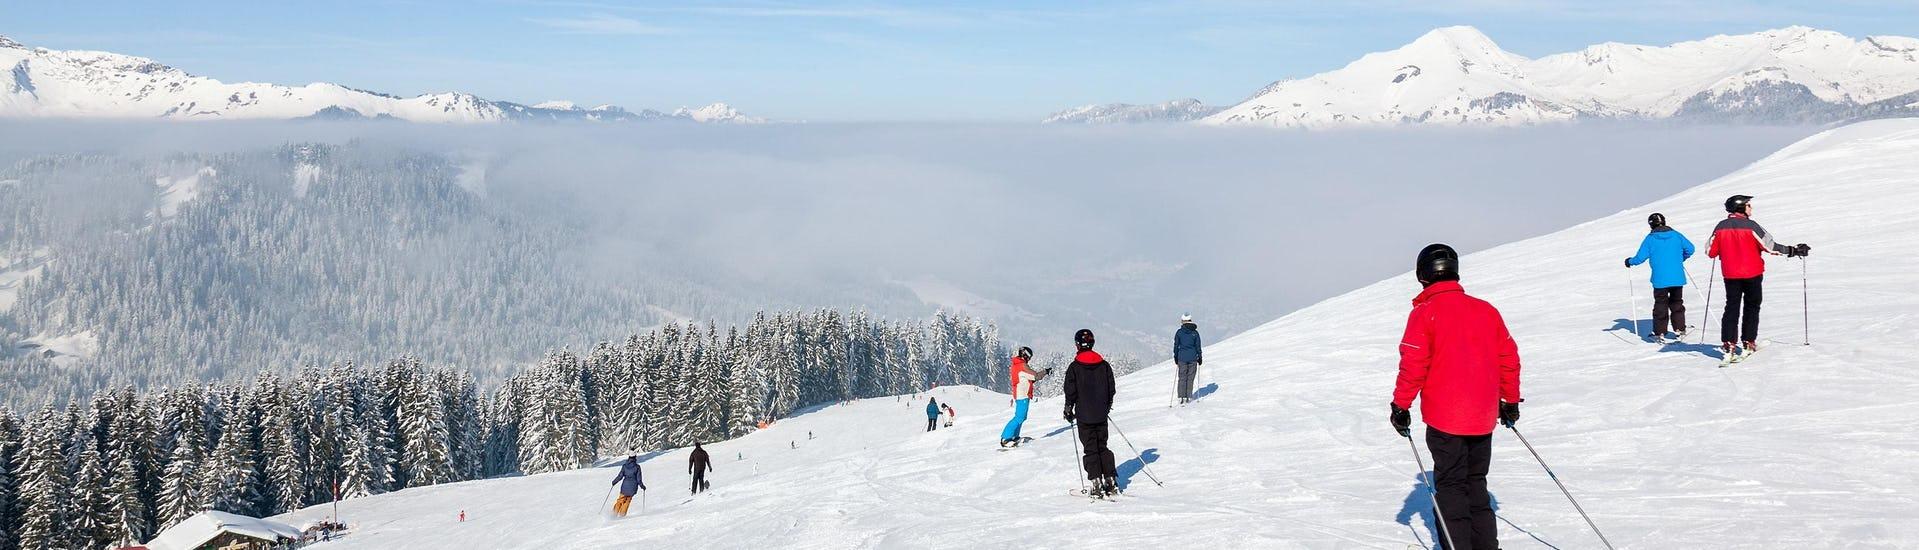 A number of skiers is skiing down a ski slope in the ski resort of Morzine, with a beautiful view of the surrounding mountainscape that is visible to all who book ski lessons with the local ski schools.